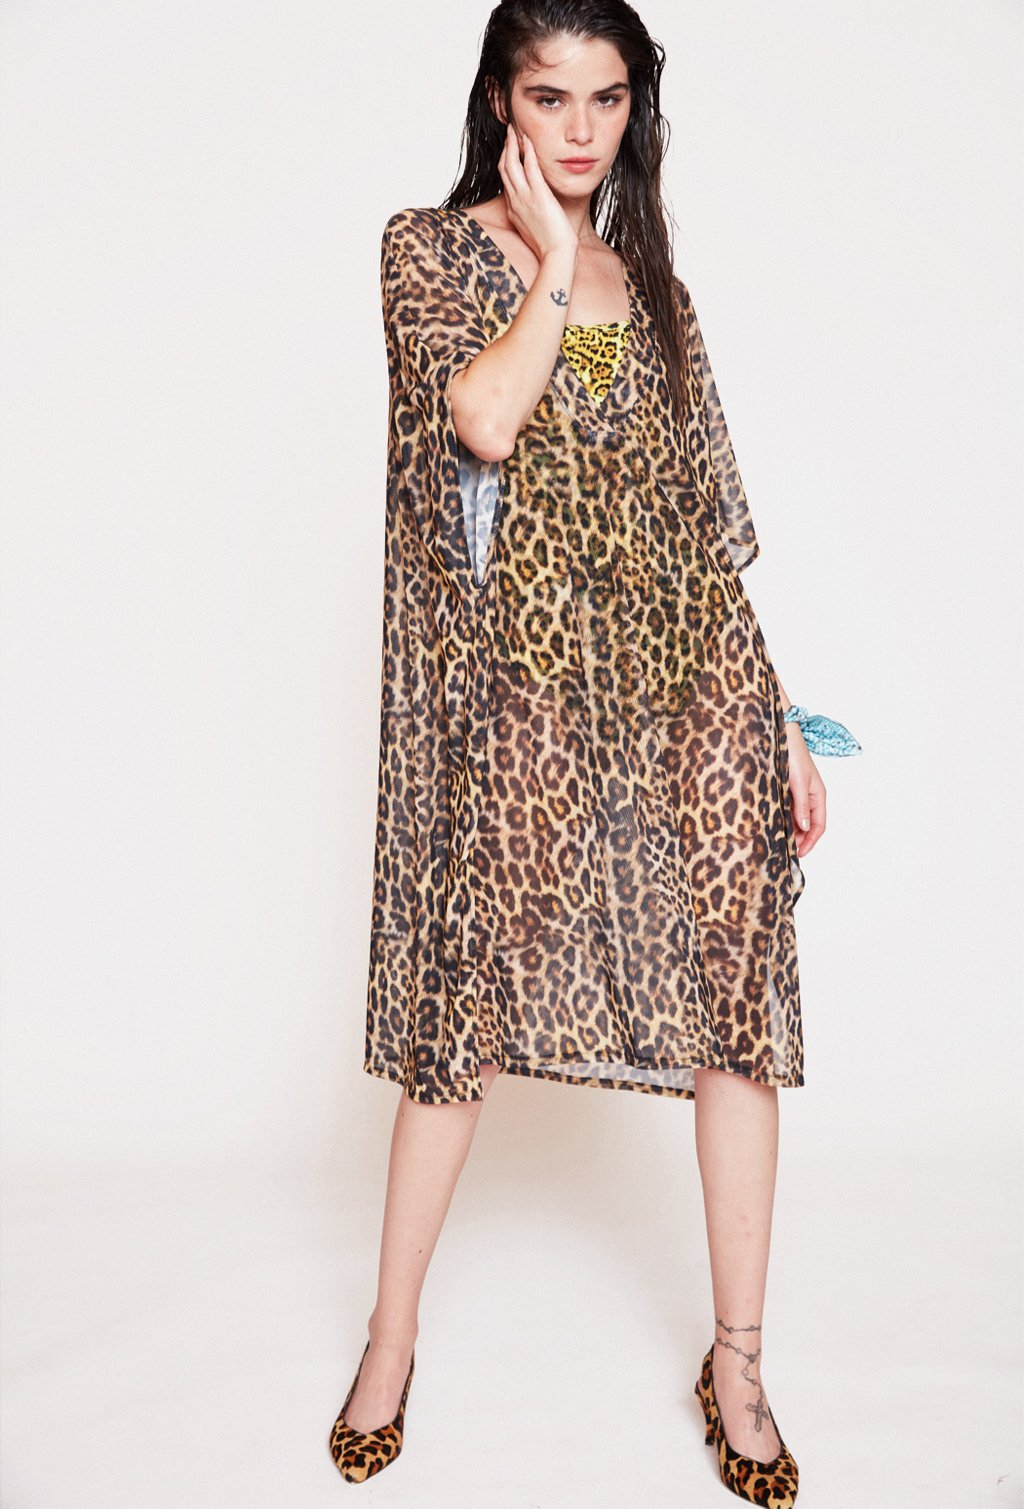 FONTELINA LEOPARD DRESS